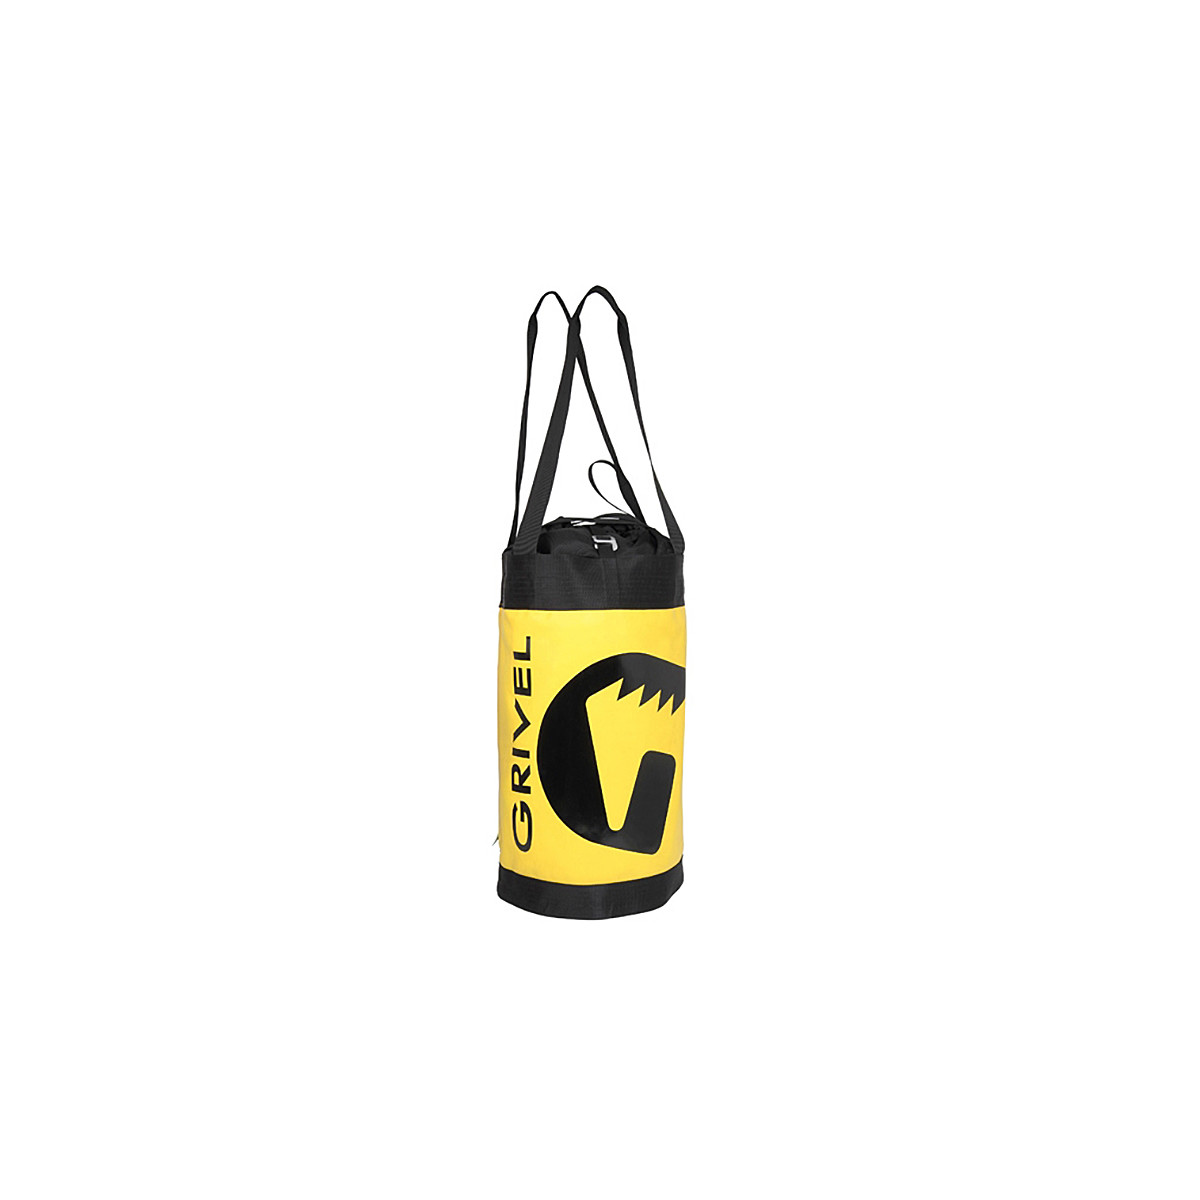 Grivel Haul Bag